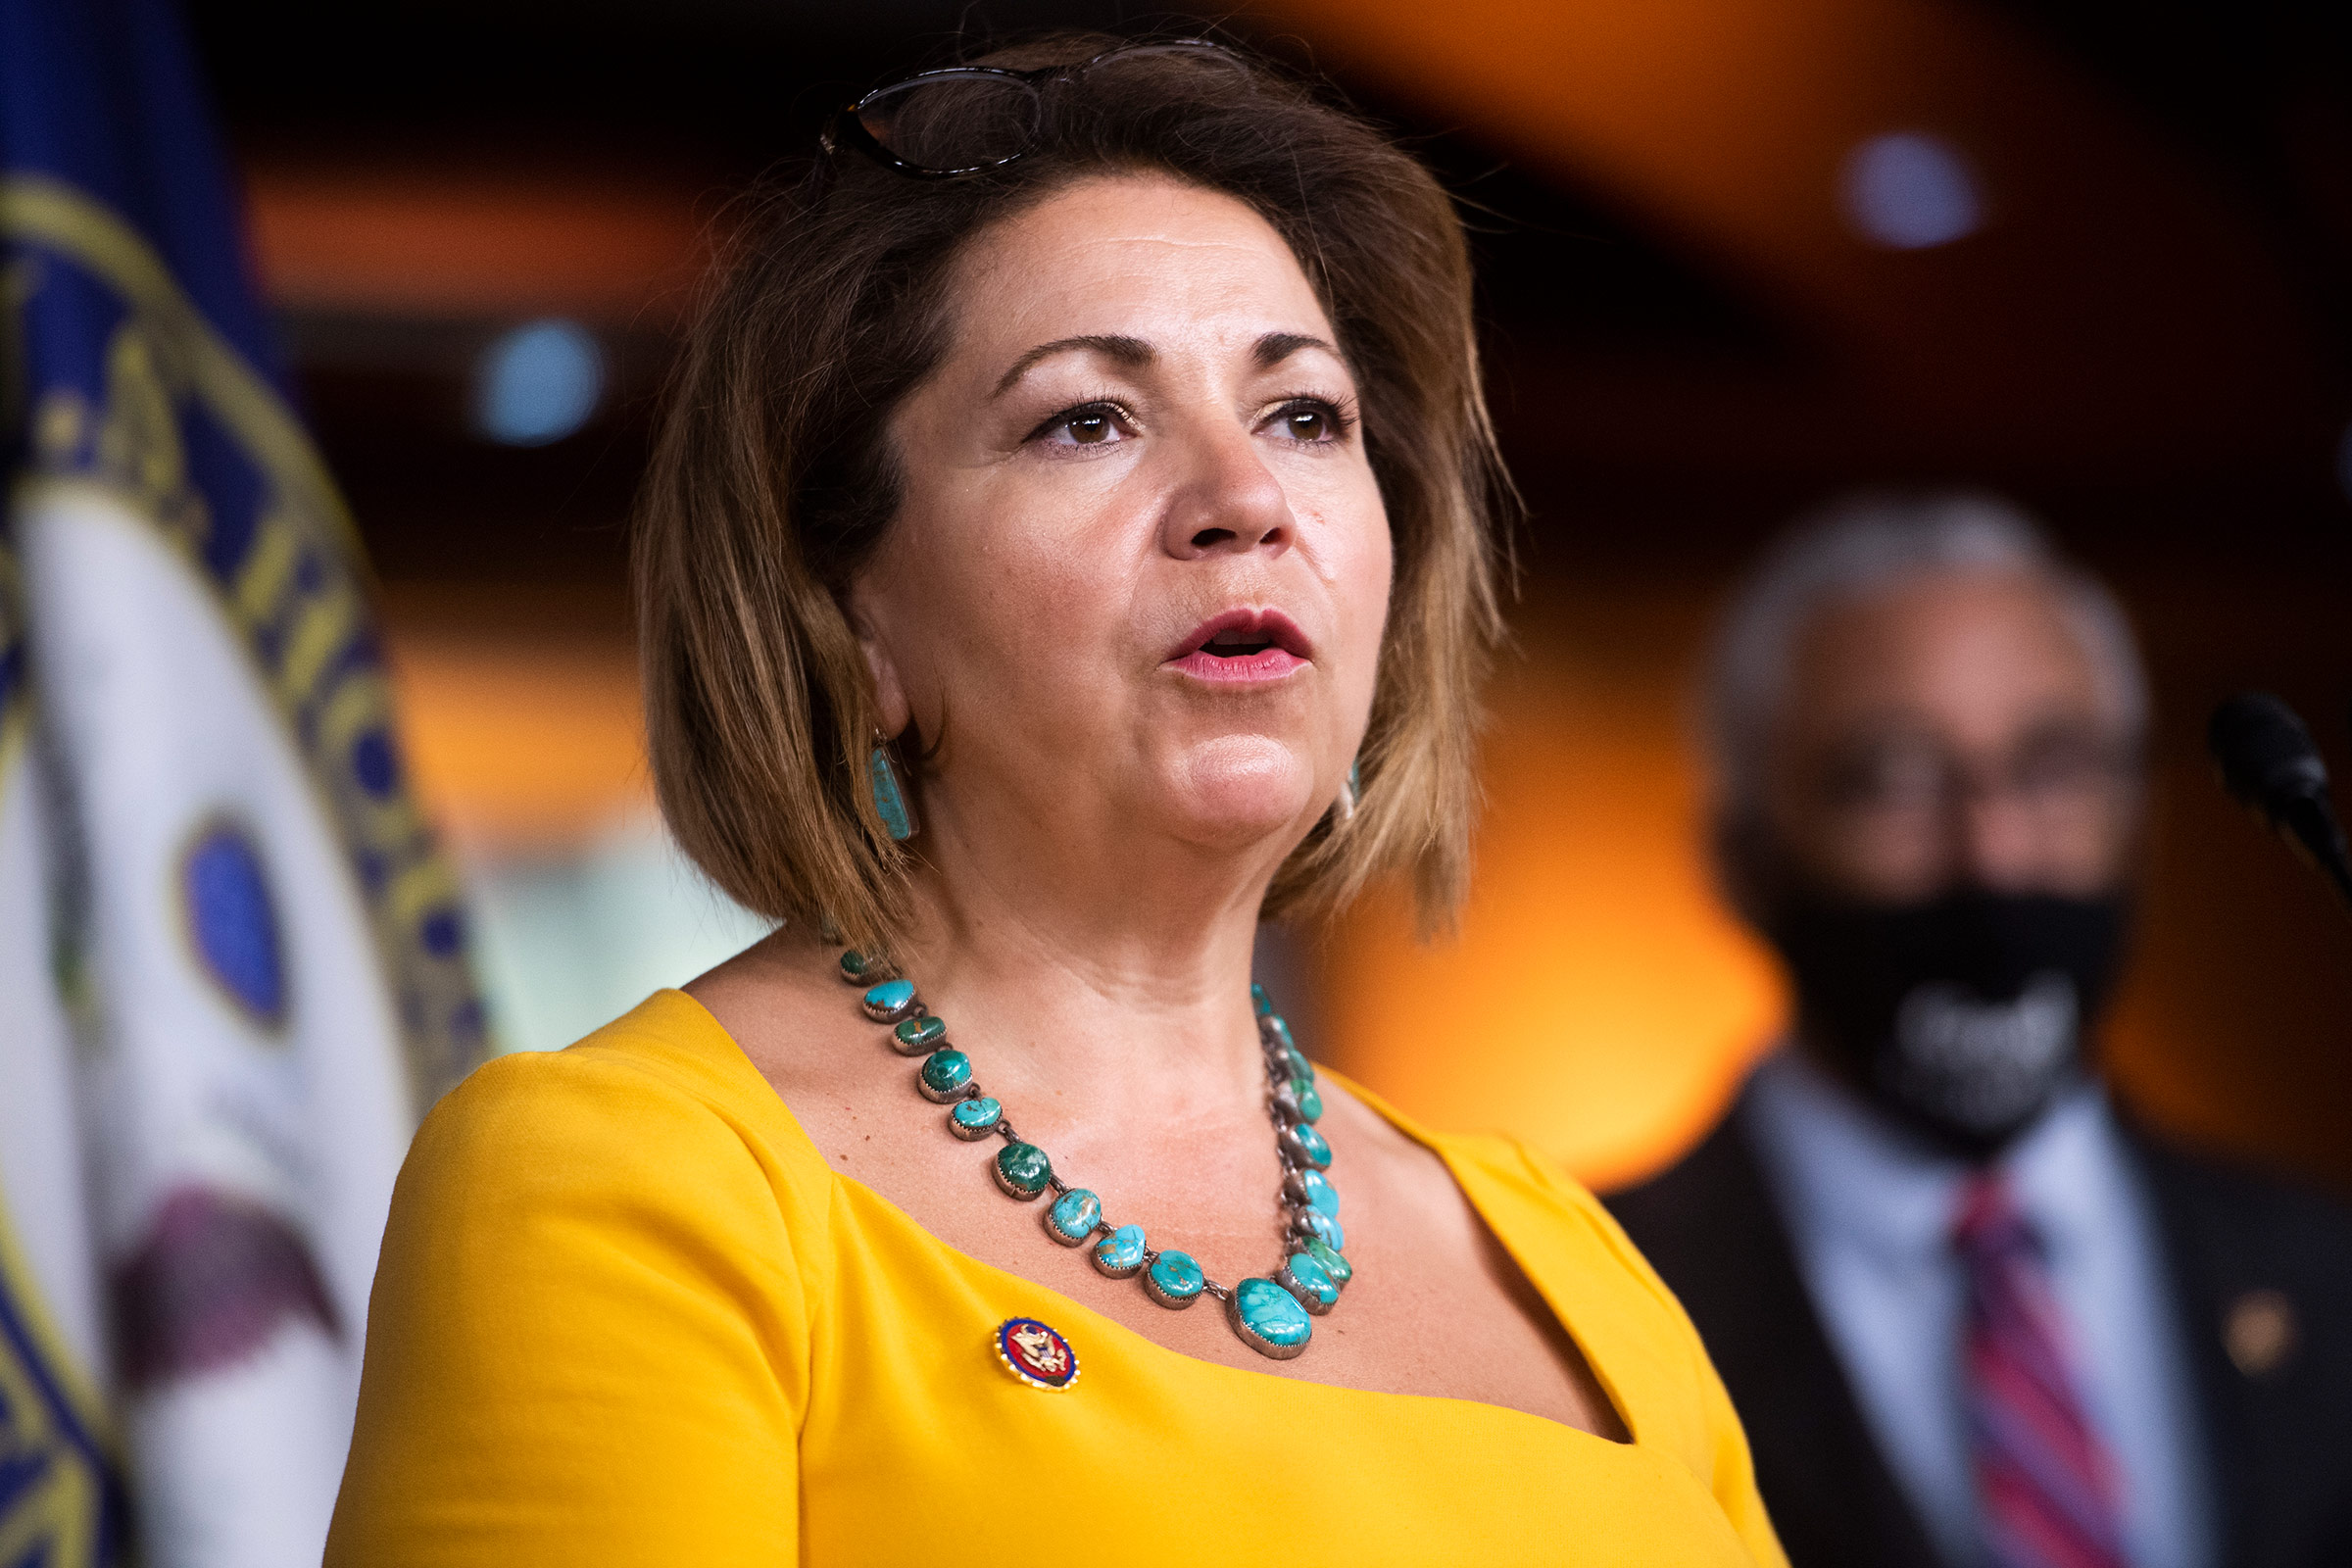 Rep. Linda Sánchez speaks during a news conference on July 29, 2020.